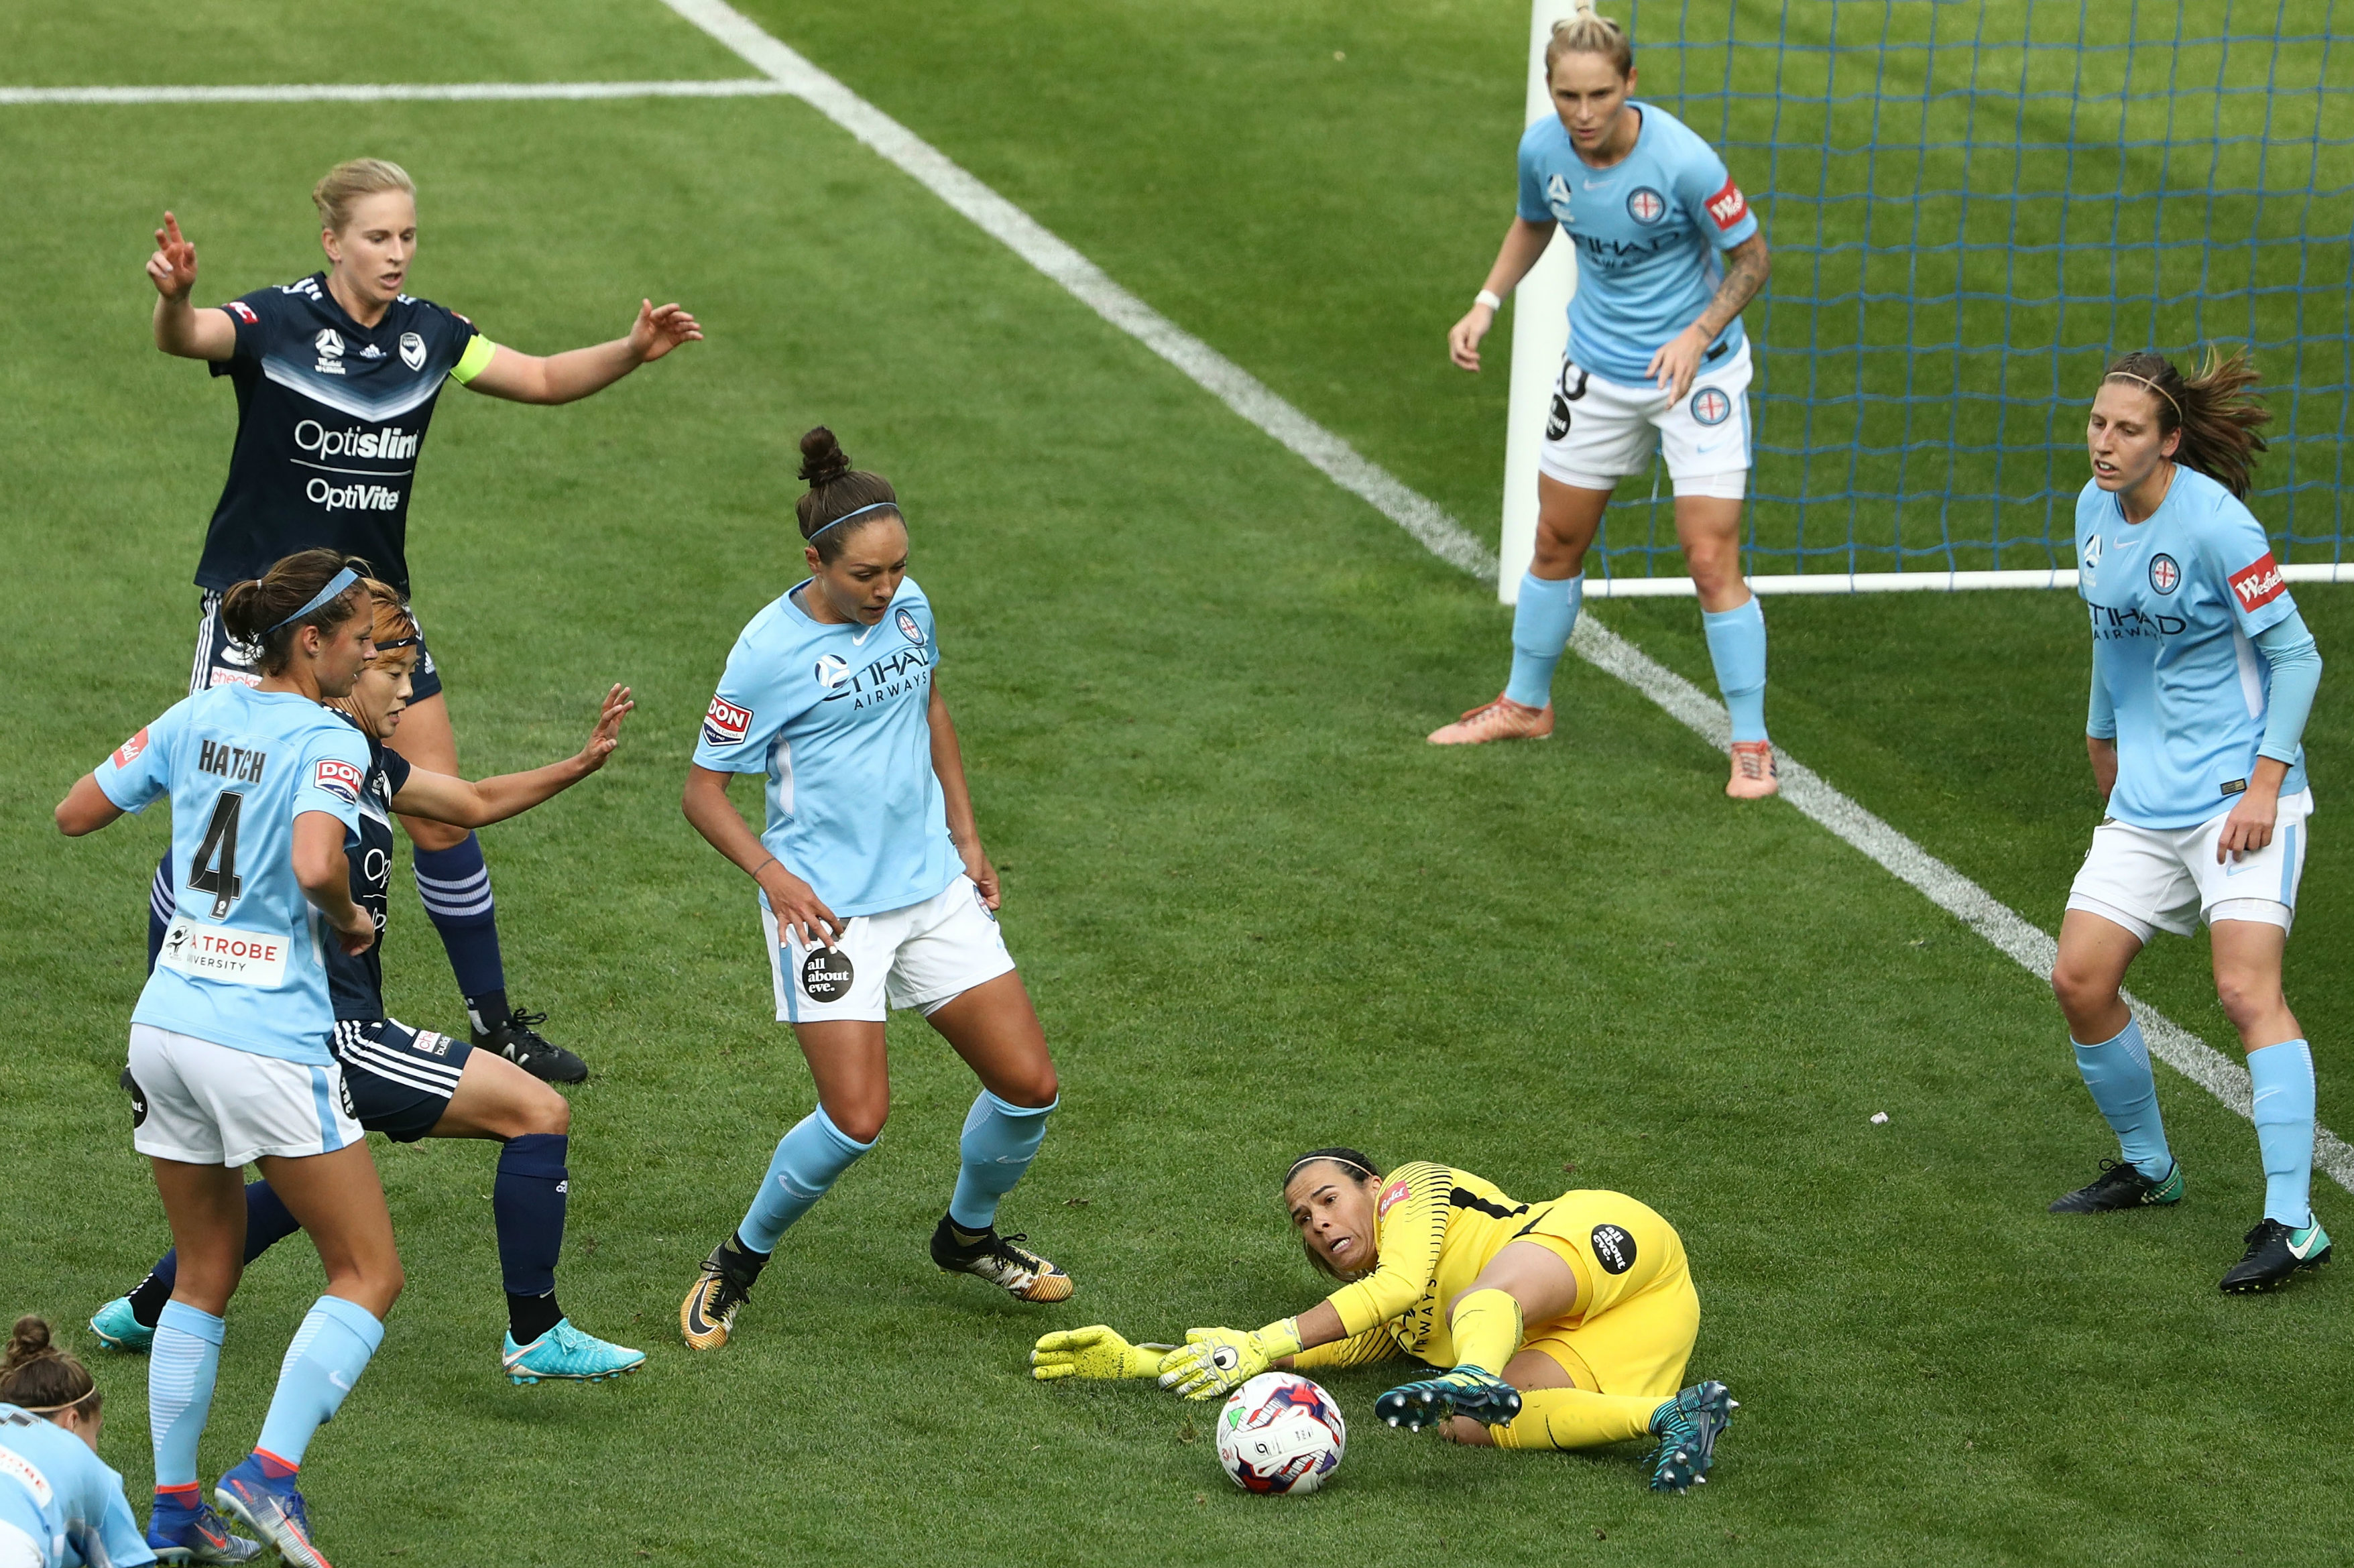 Lydia Williams makes a key save in the Melbourne Derby.